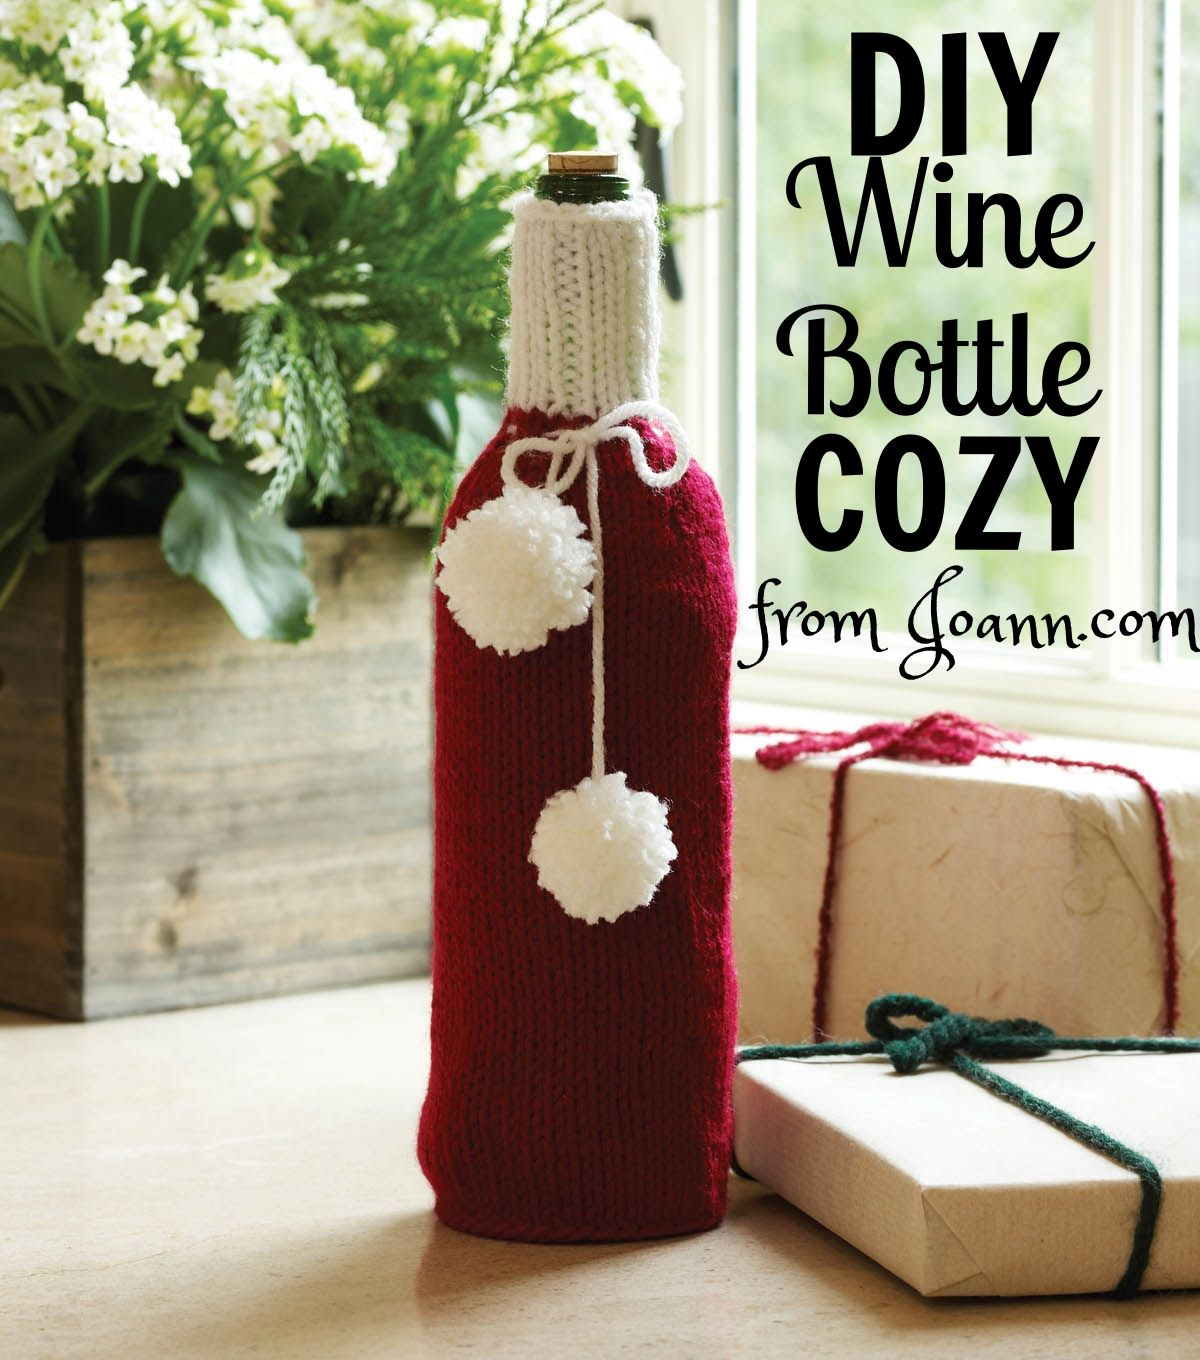 FREE PATTERN! Make your own DIY Wine Bottle Cozy with this free ...